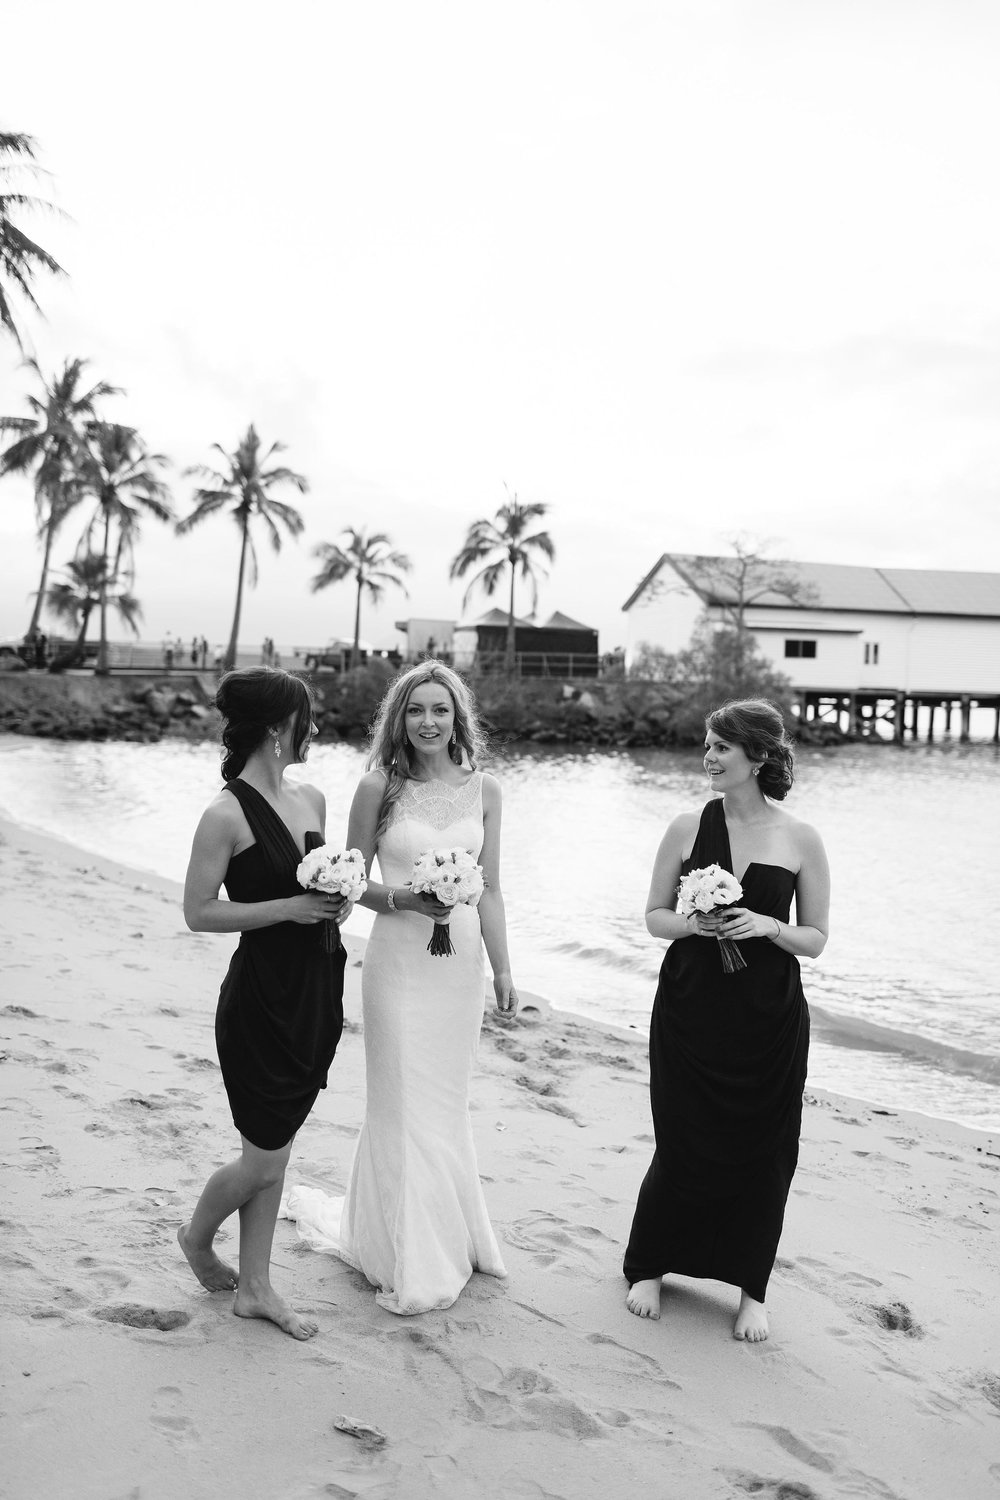 wedding_photography_port_douglas_0190-min.jpg